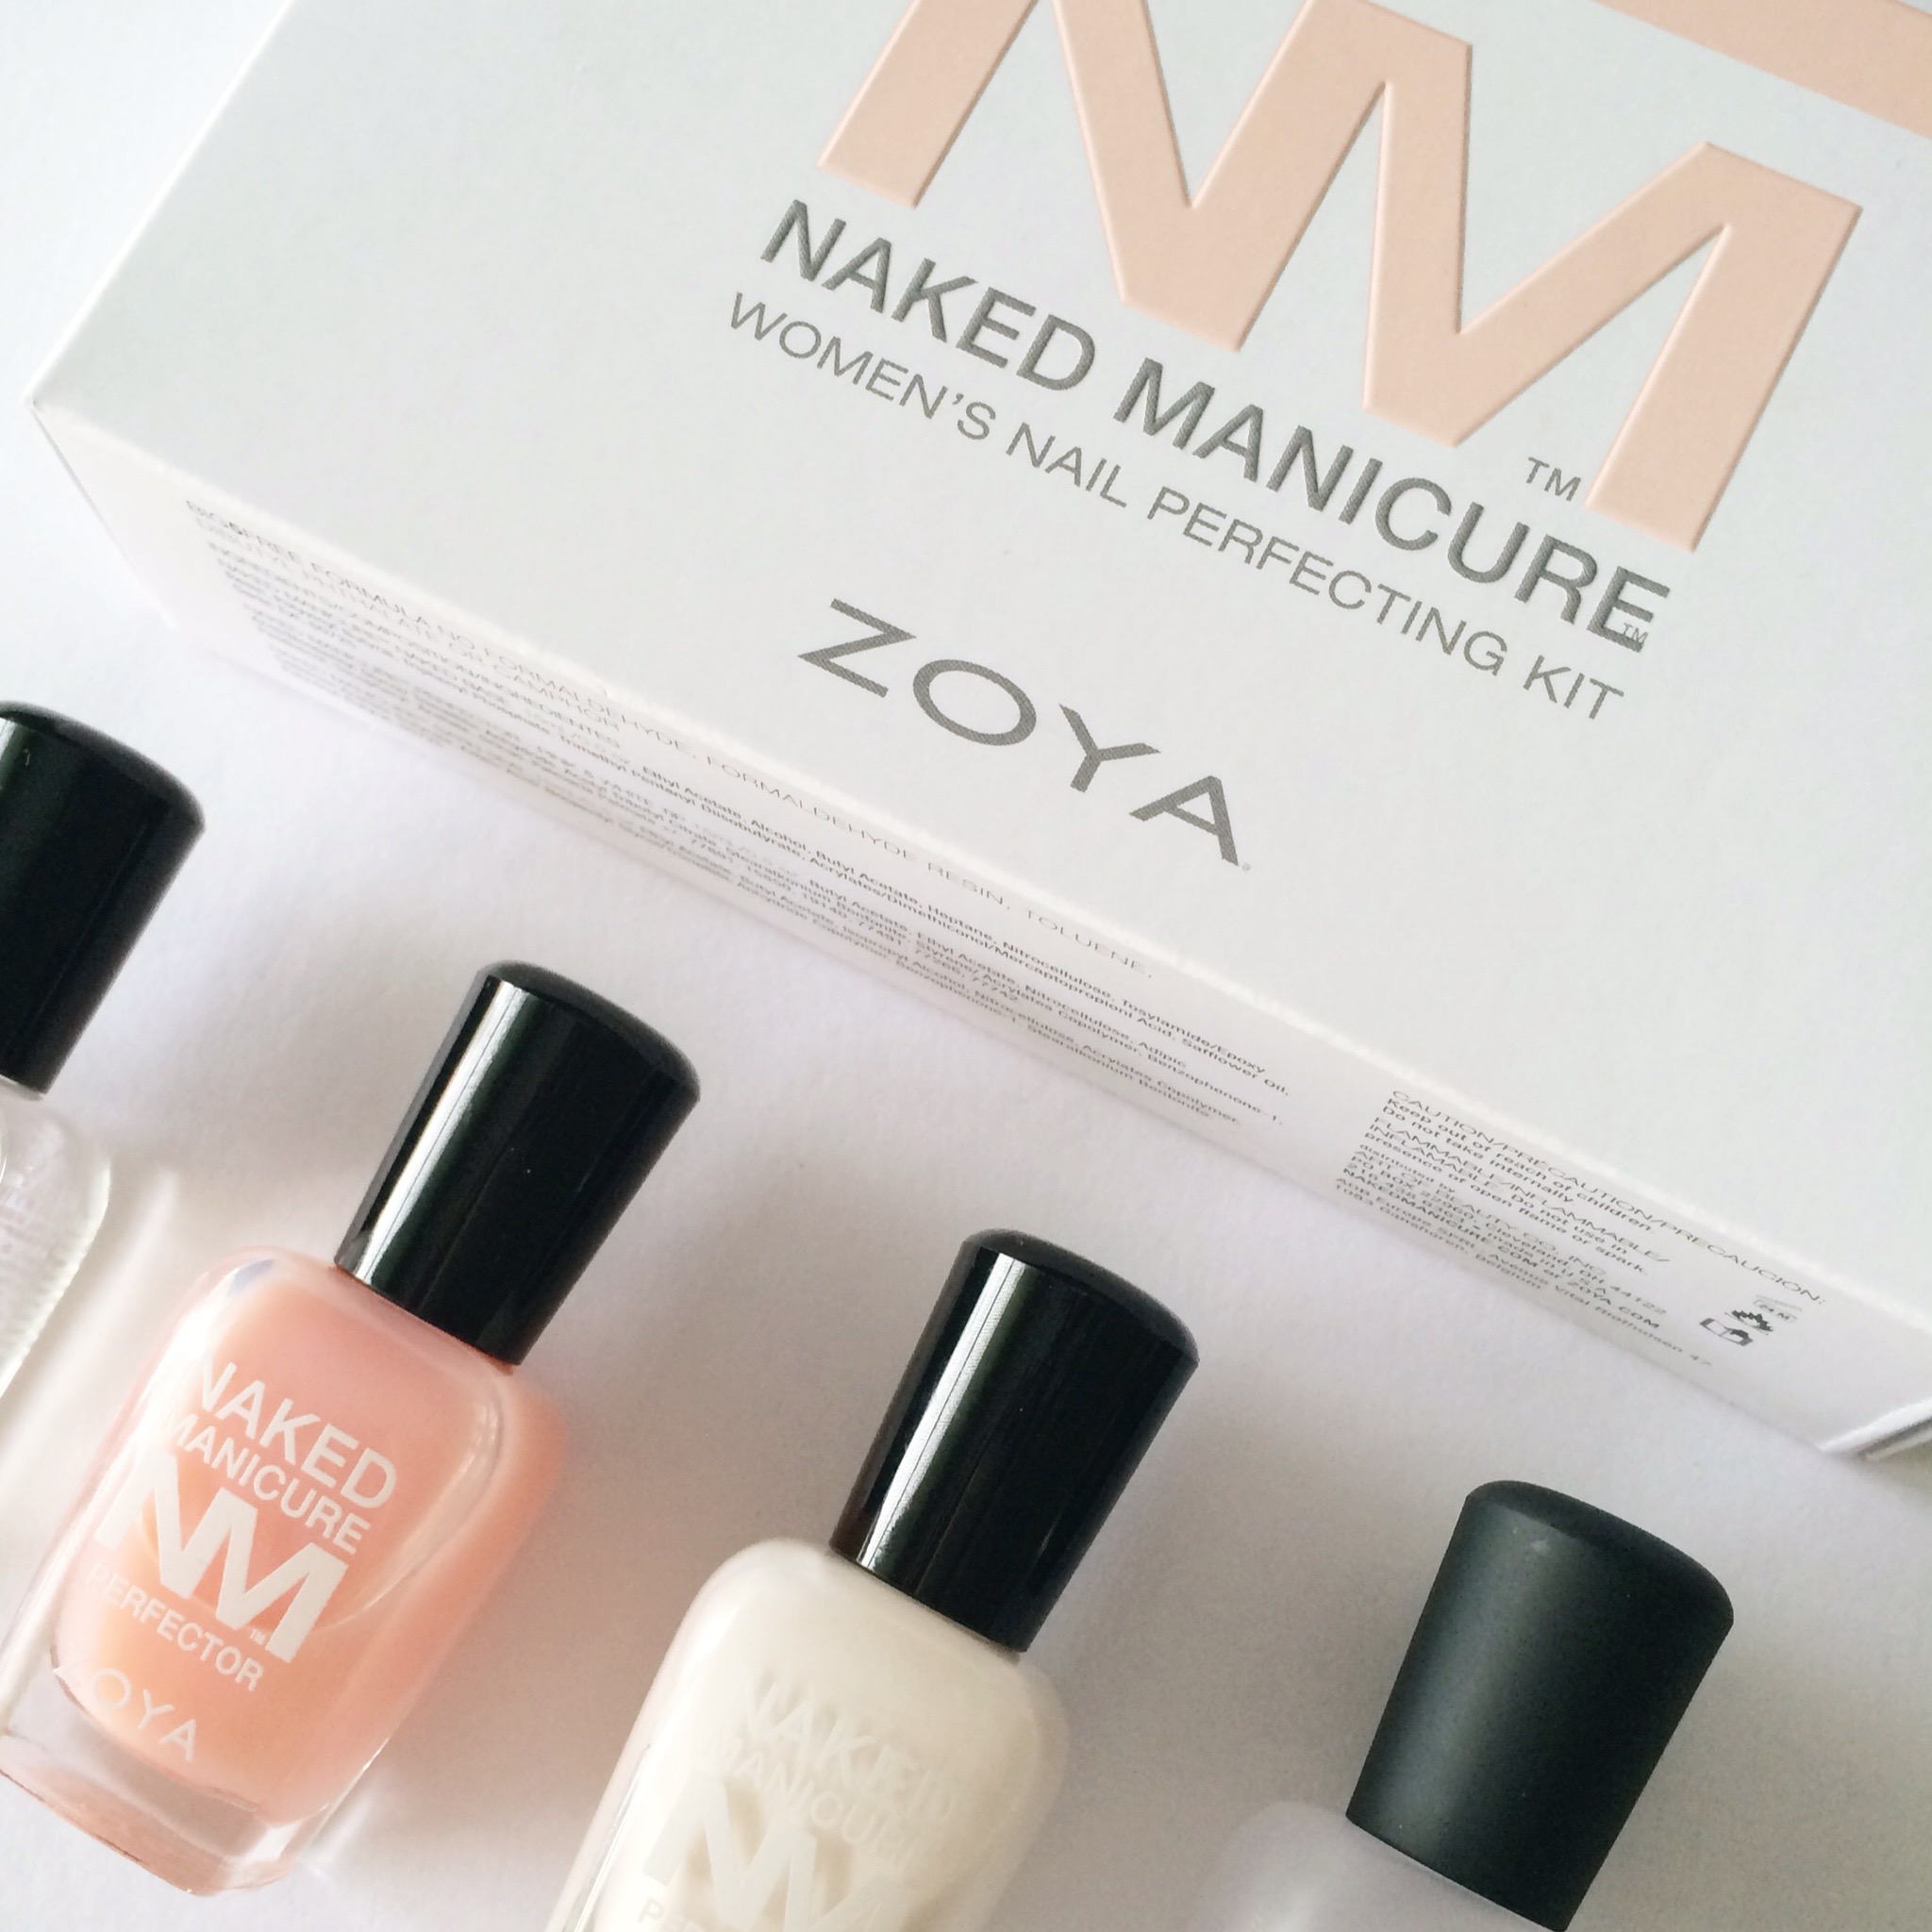 Zoya Naked Manicure Womens Nail Perfecting Kit, DIY Manicure